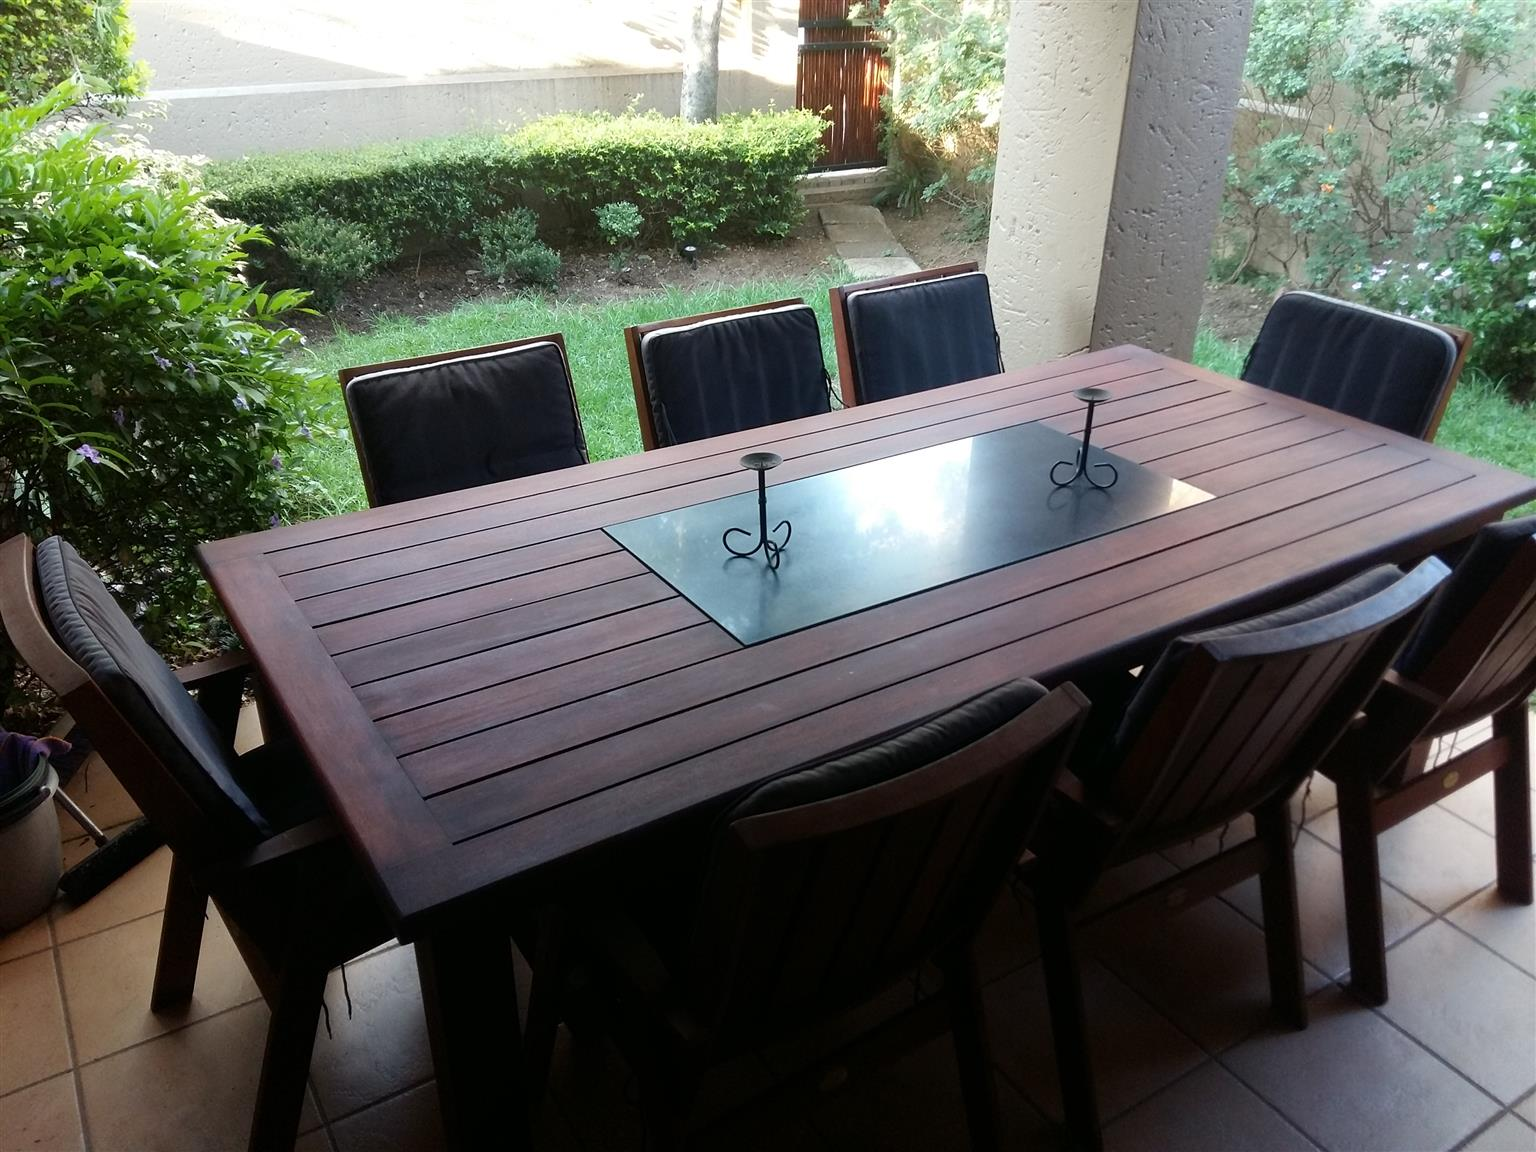 Patio/garden 8 seater table and chairs